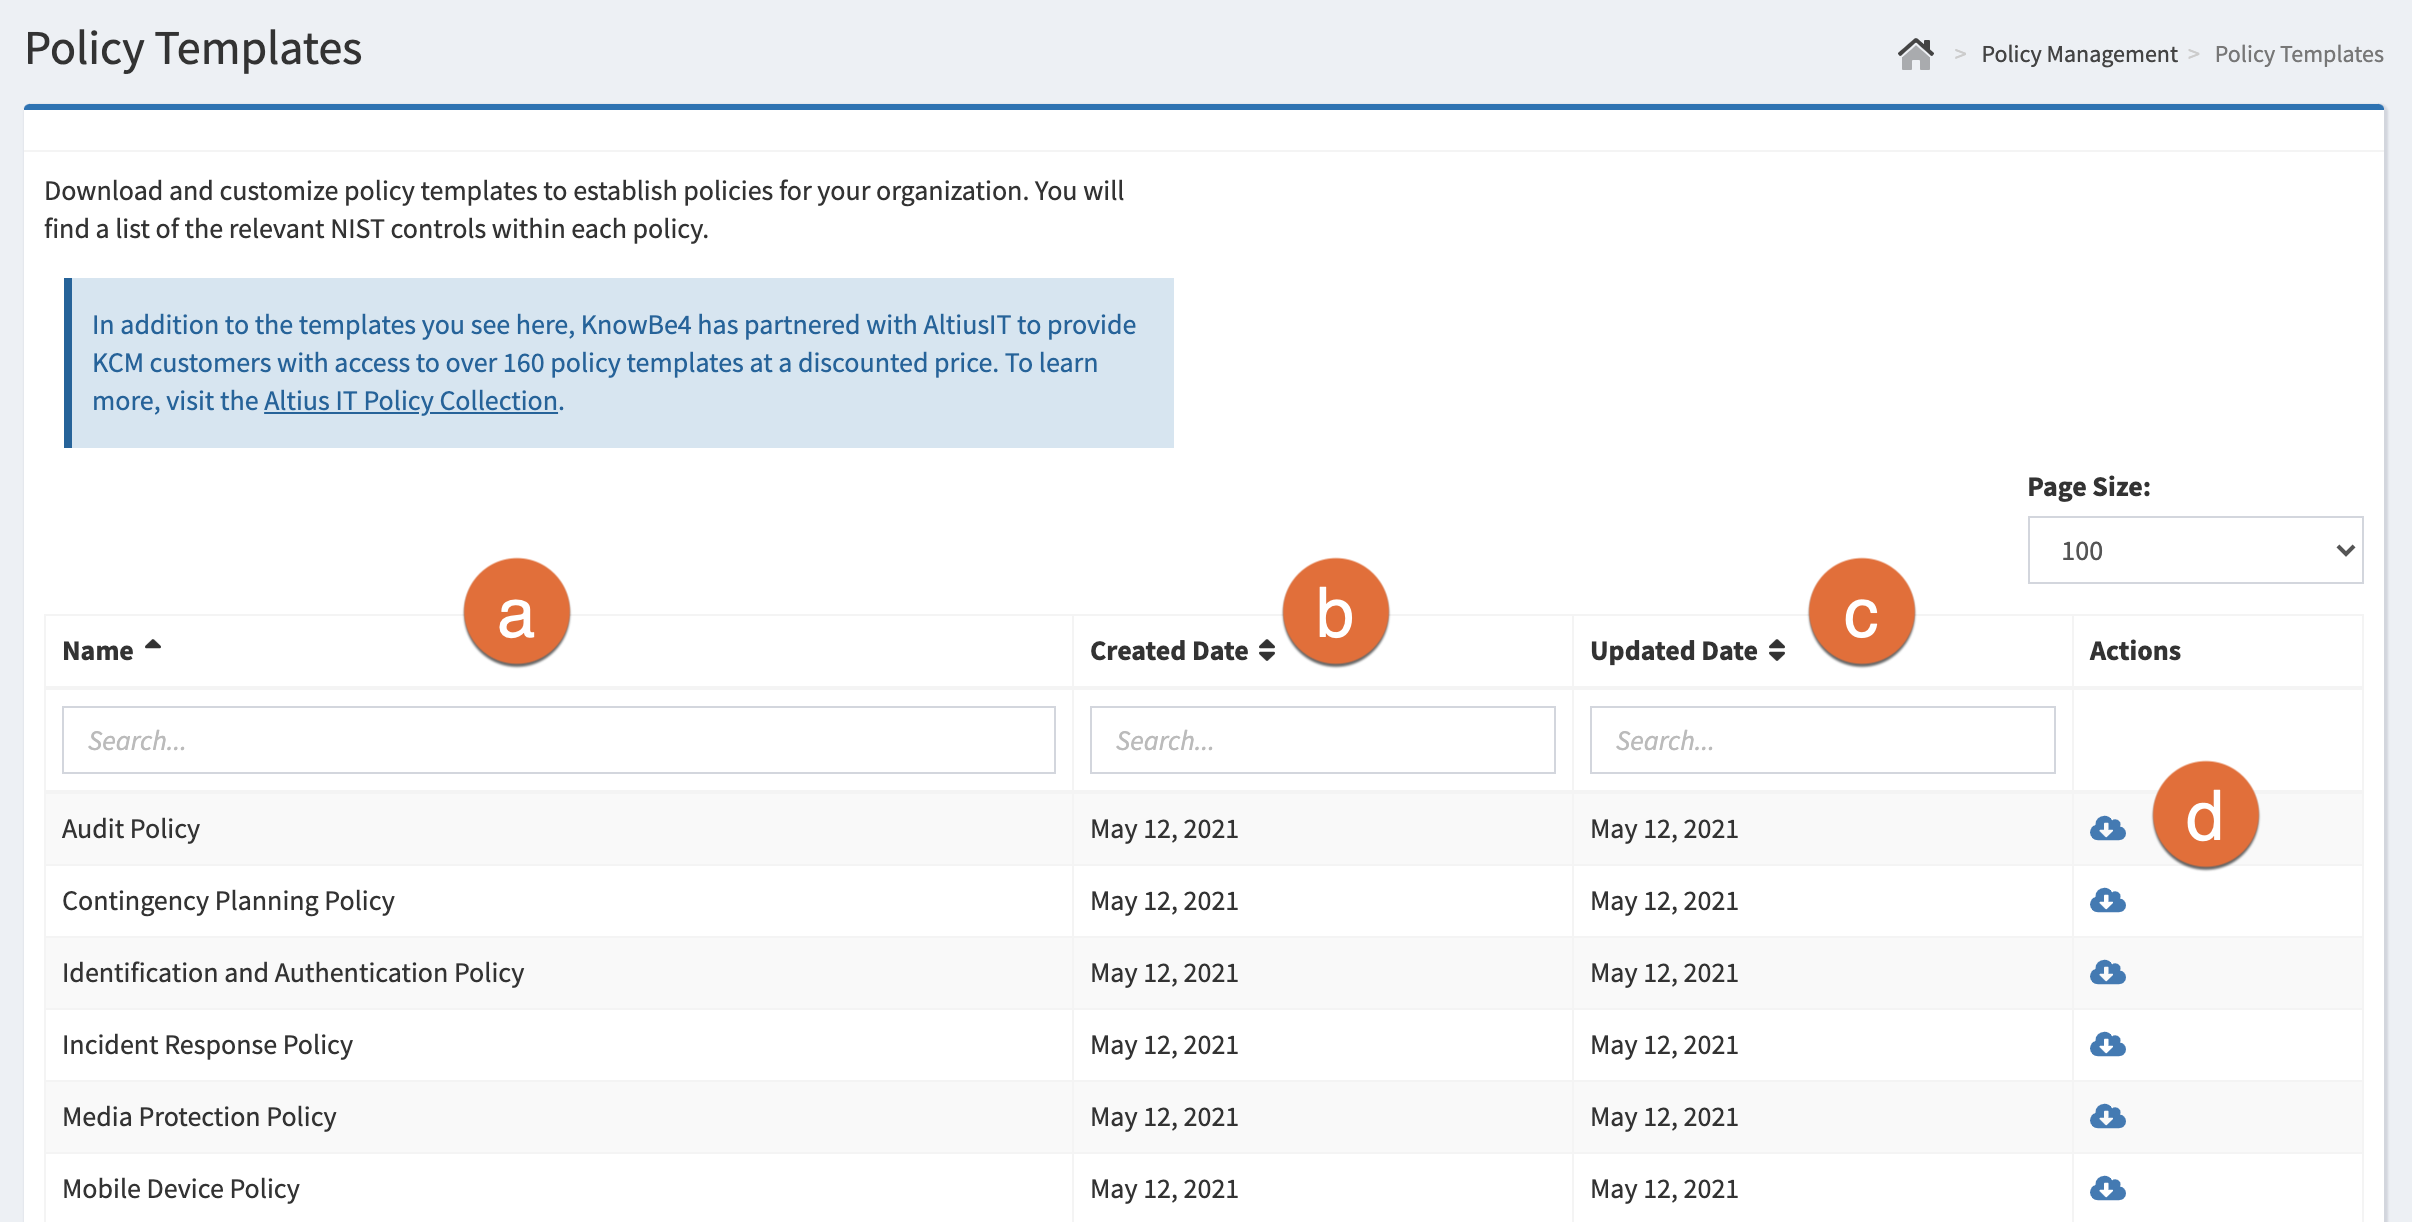 The Policy Templates page in KCM GRC.